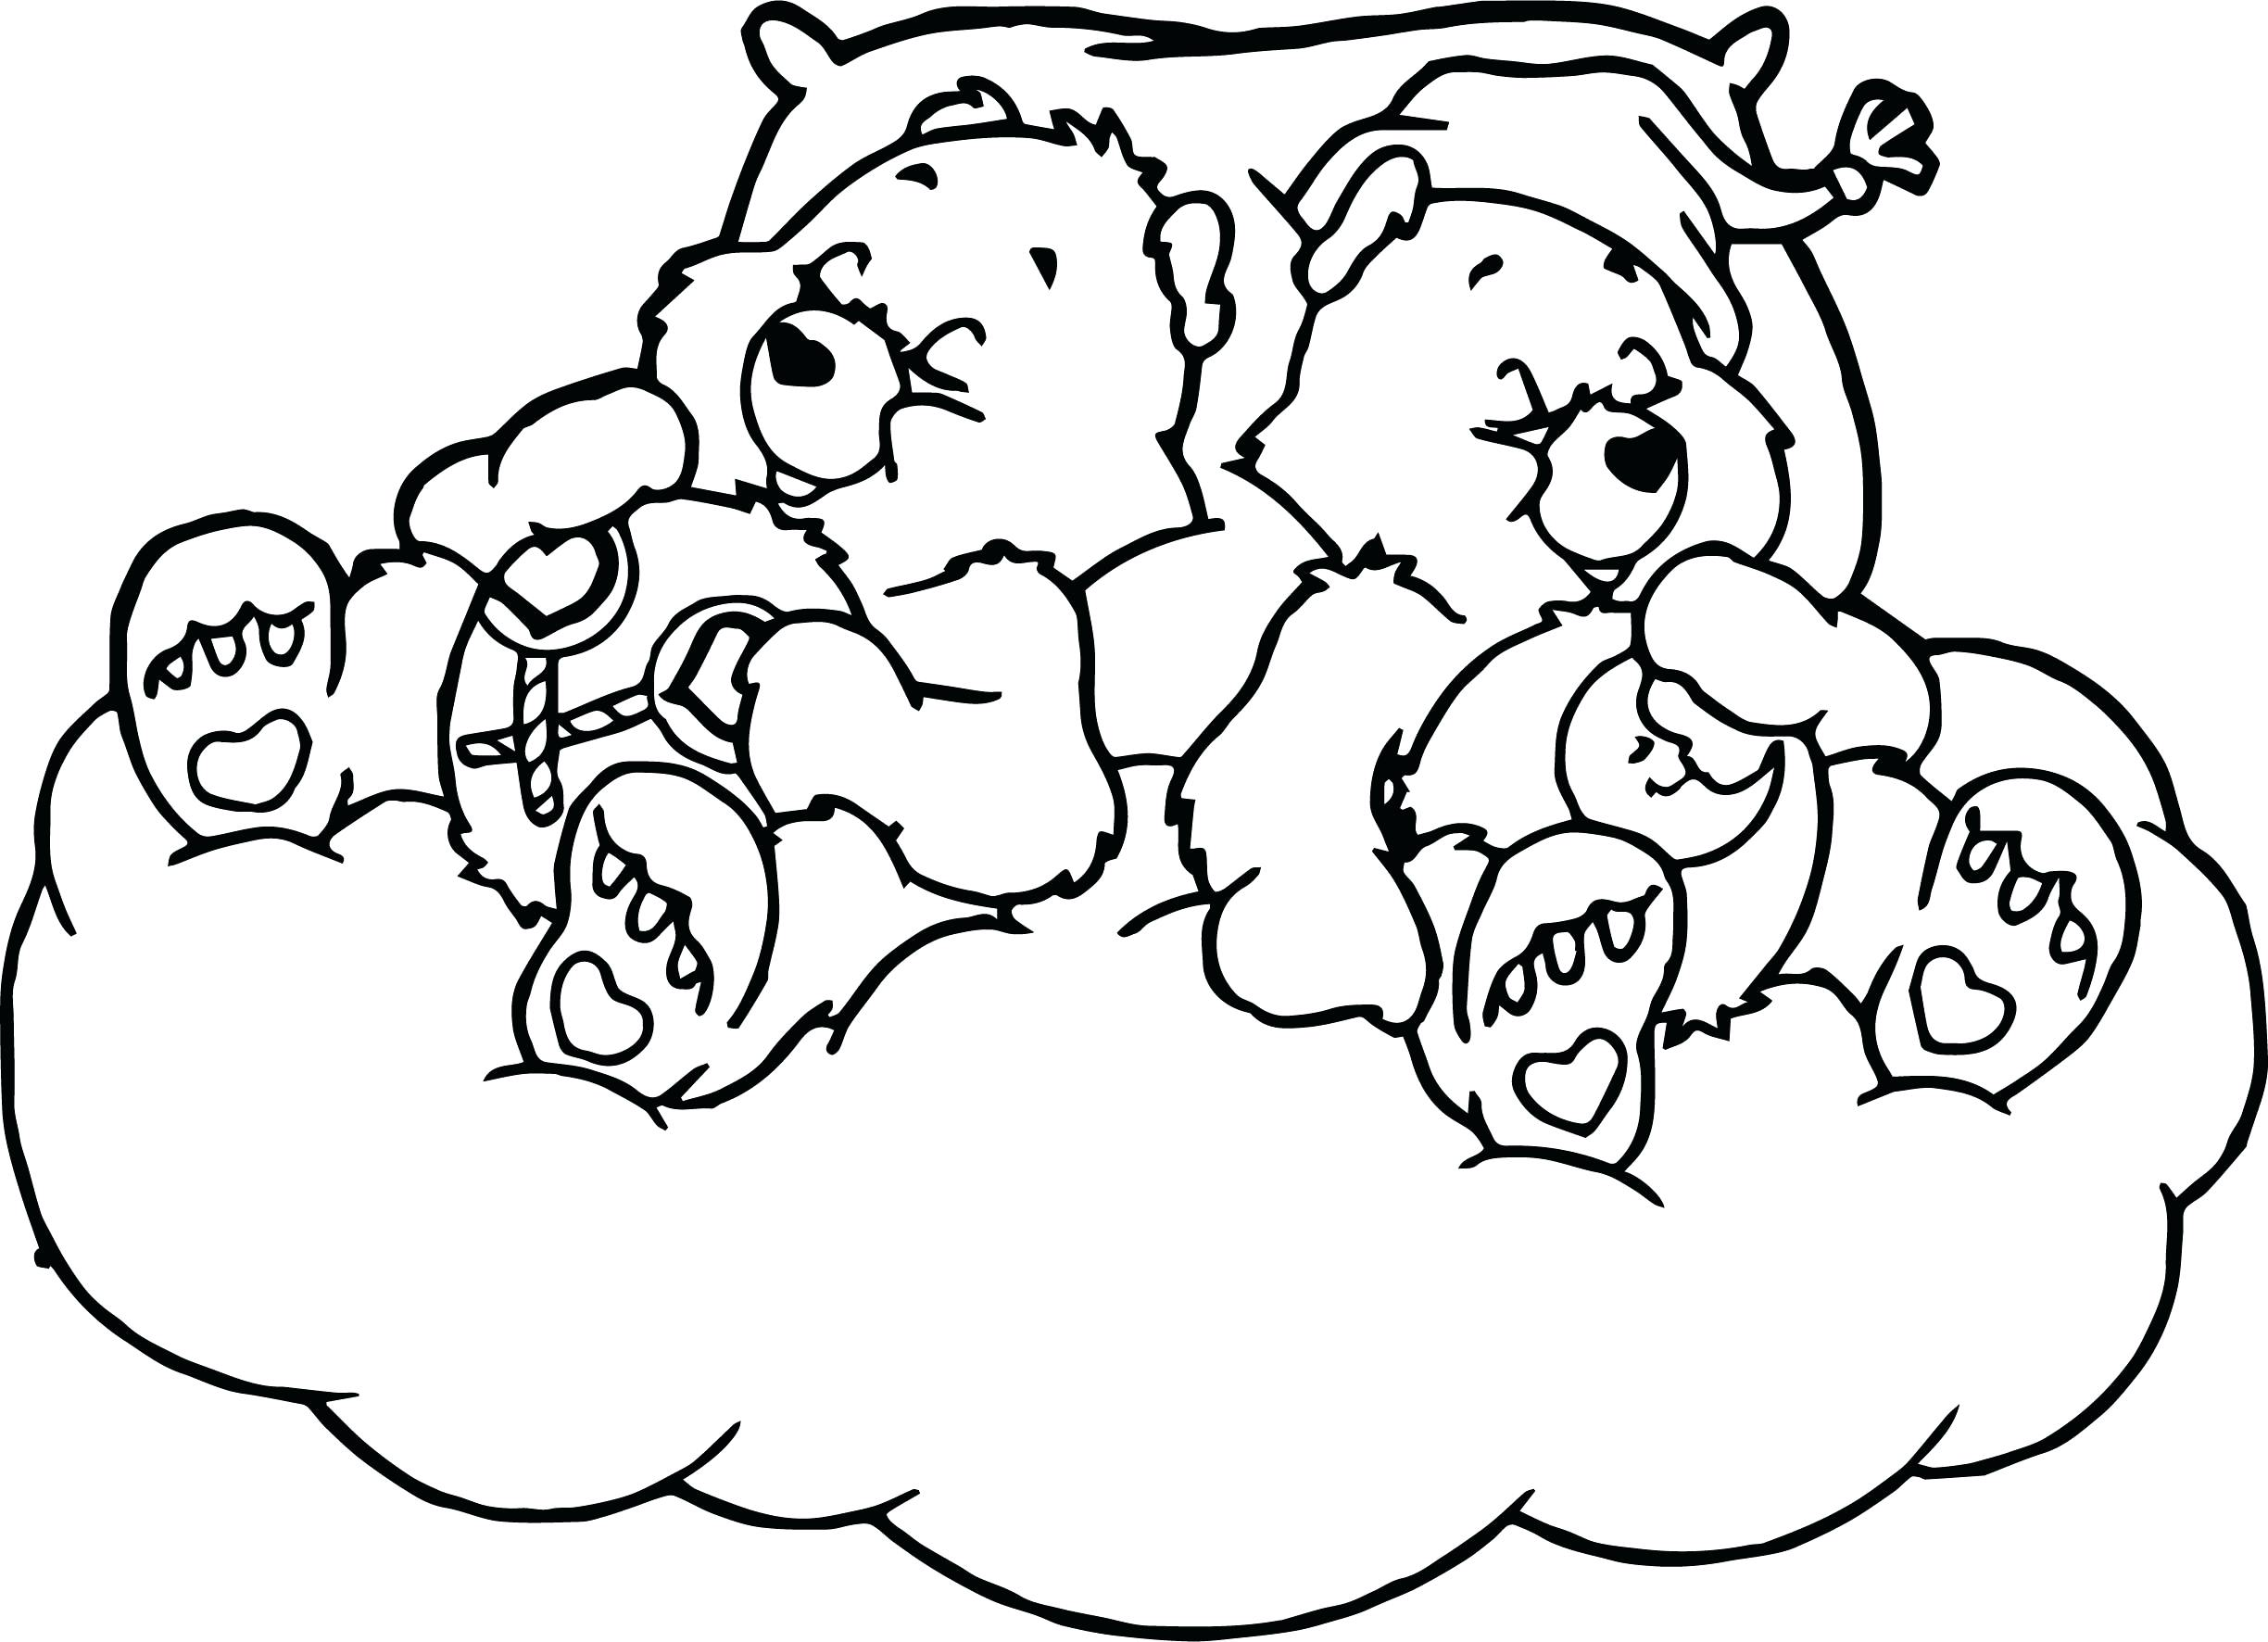 Sleeping Bear Drawing at GetDrawings.com | Free for personal use ...